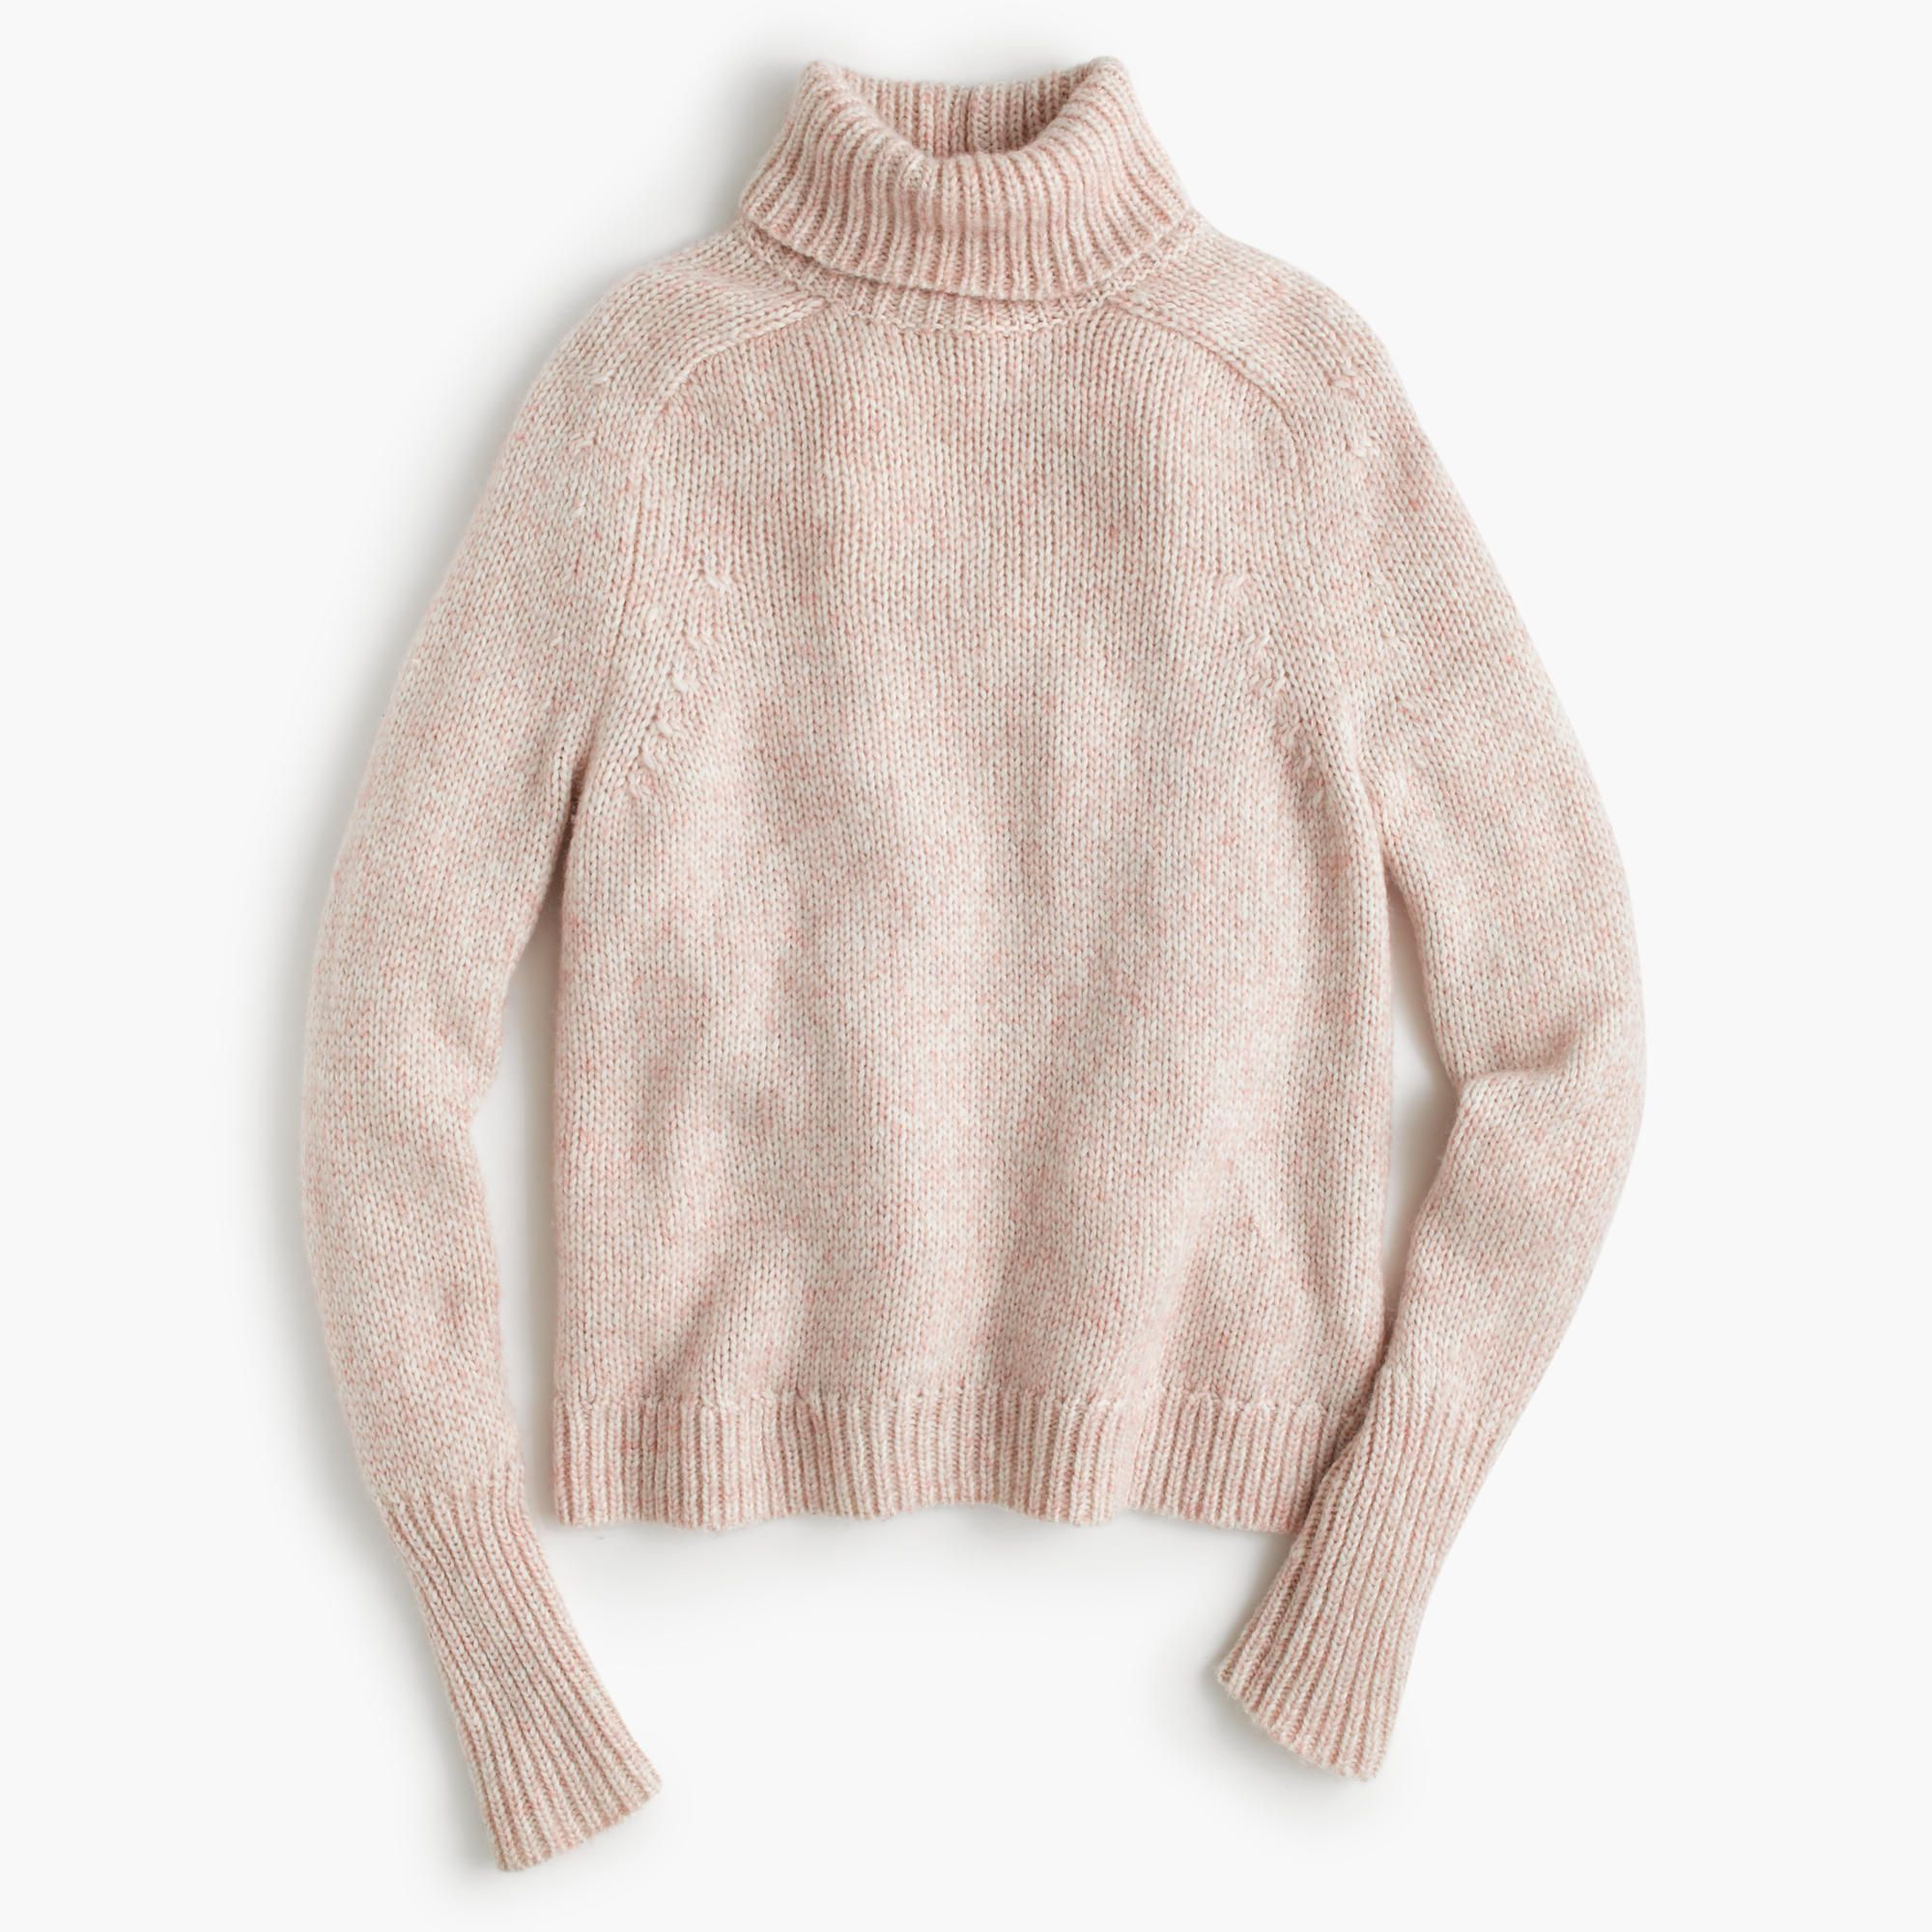 Grab This Life-Changing Reformation Sweater Before It Sells Out ...